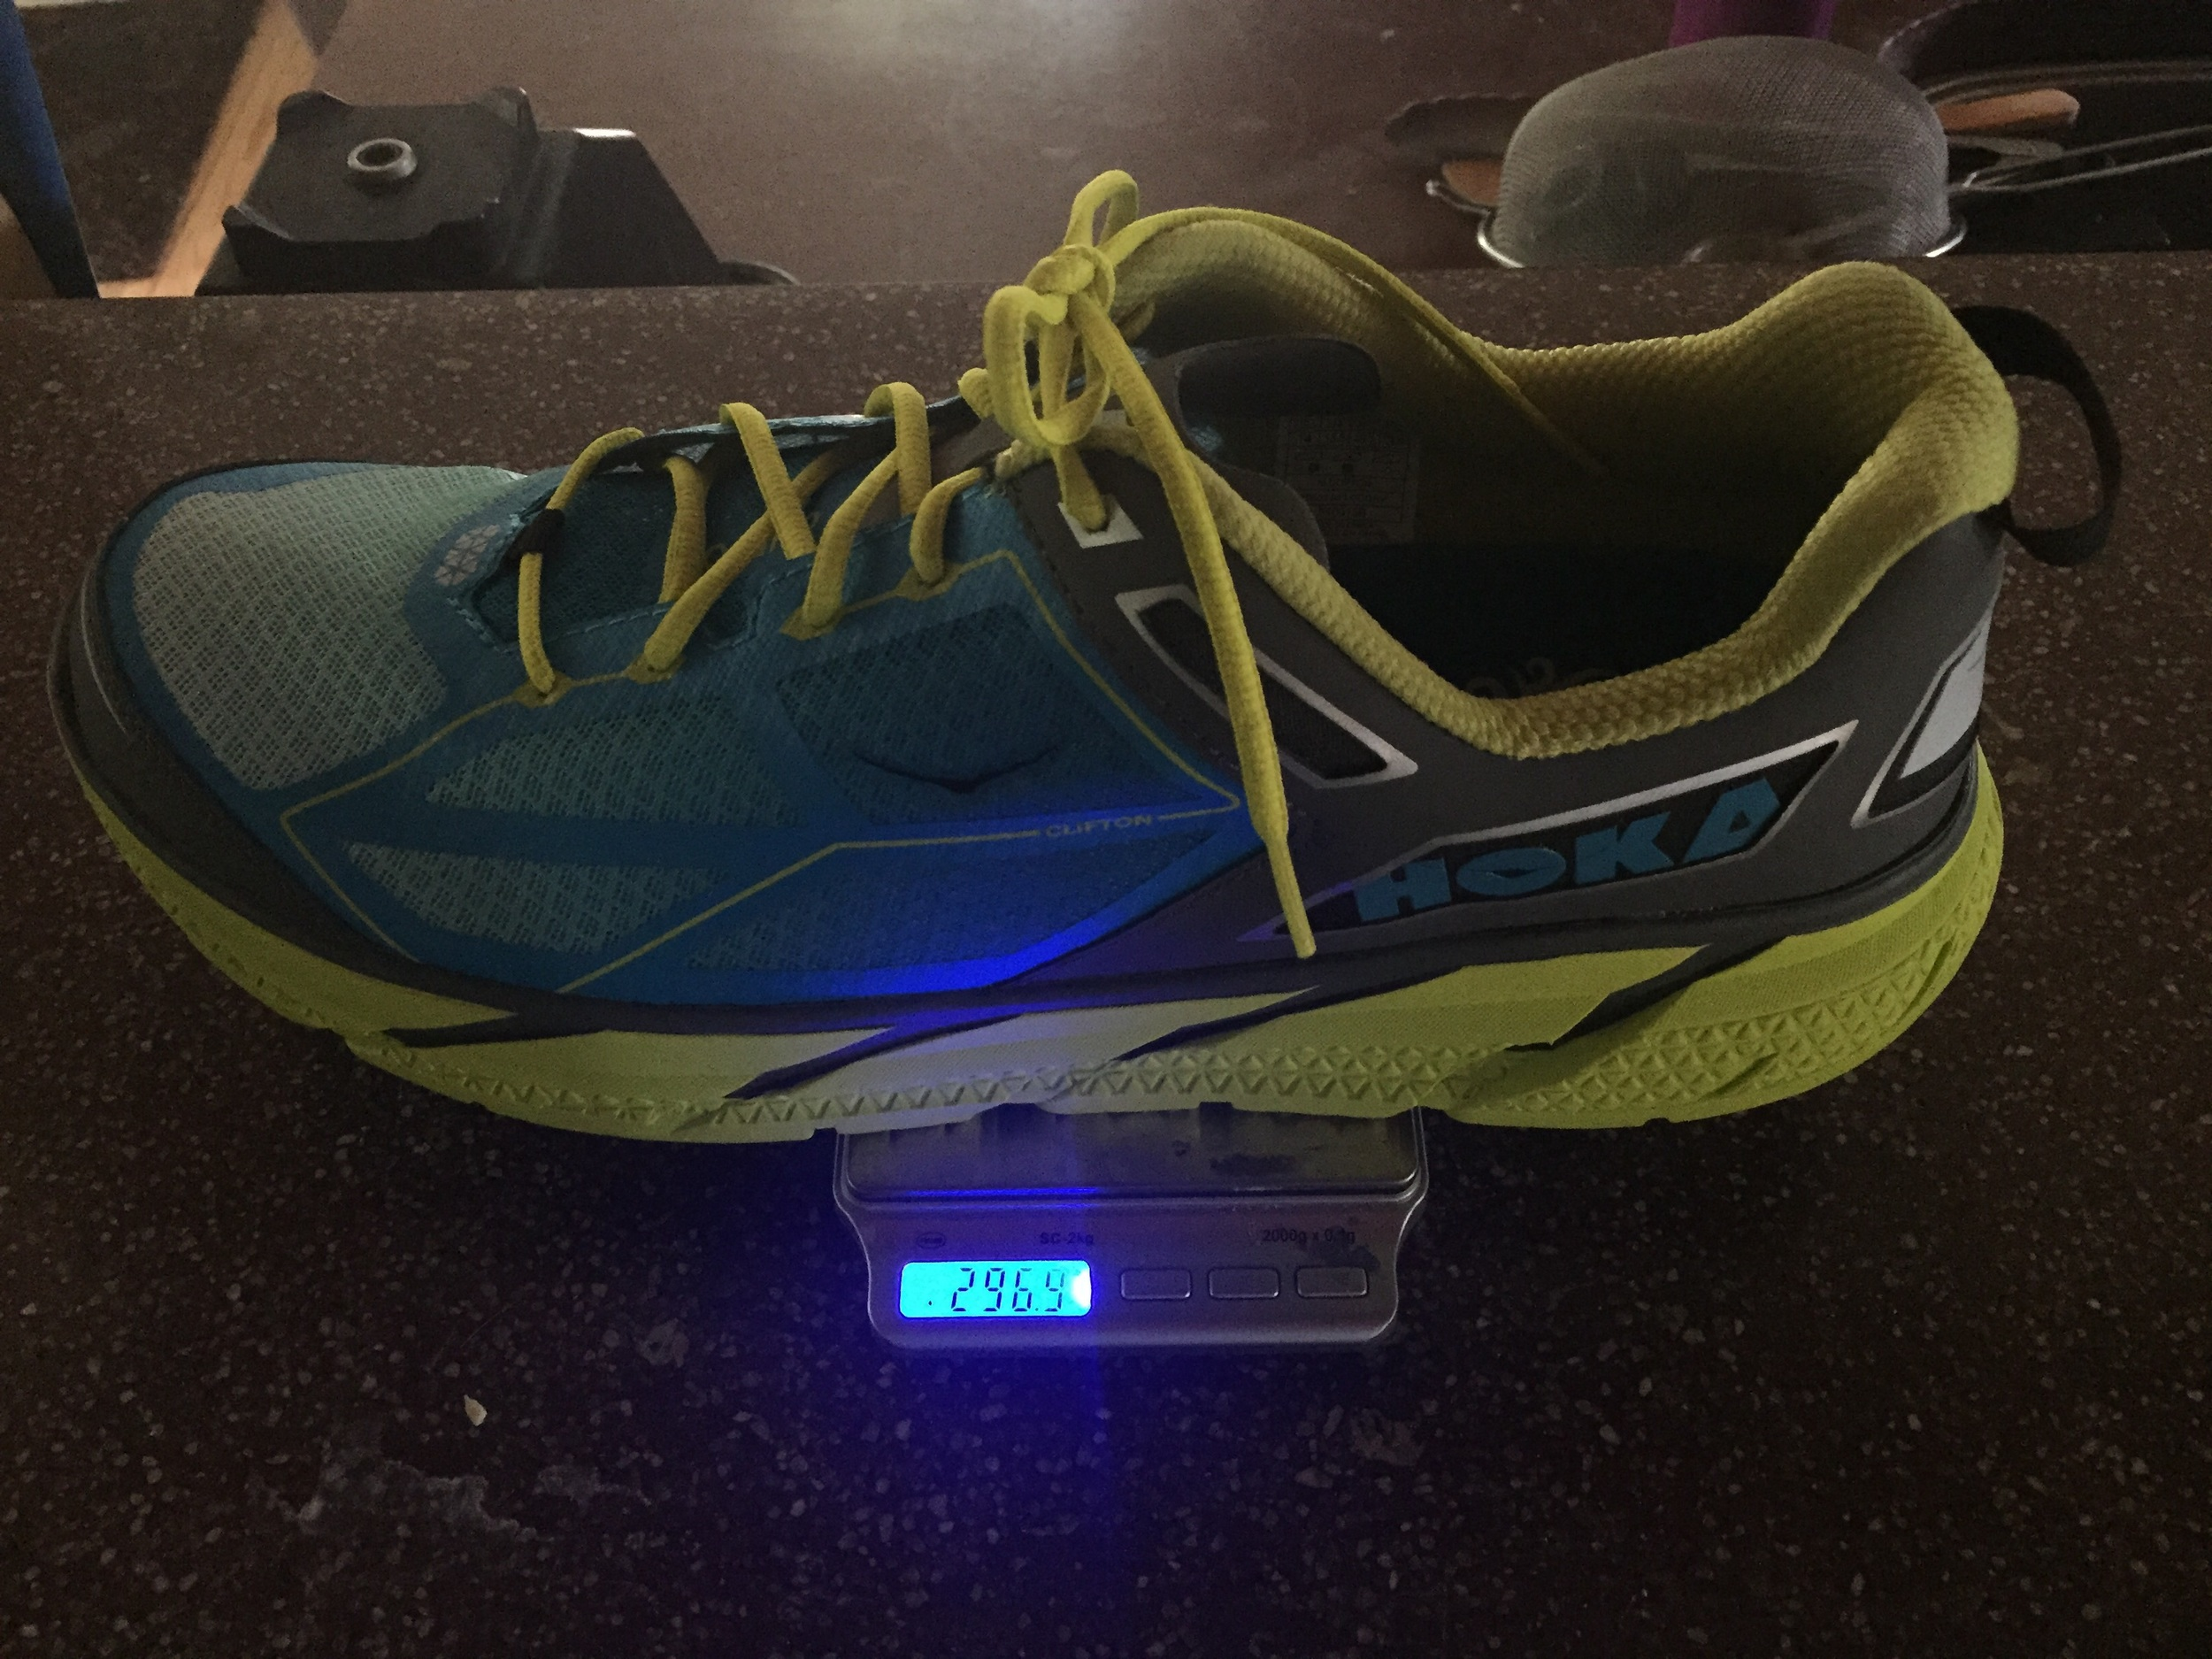 296g, featherweight training shoes